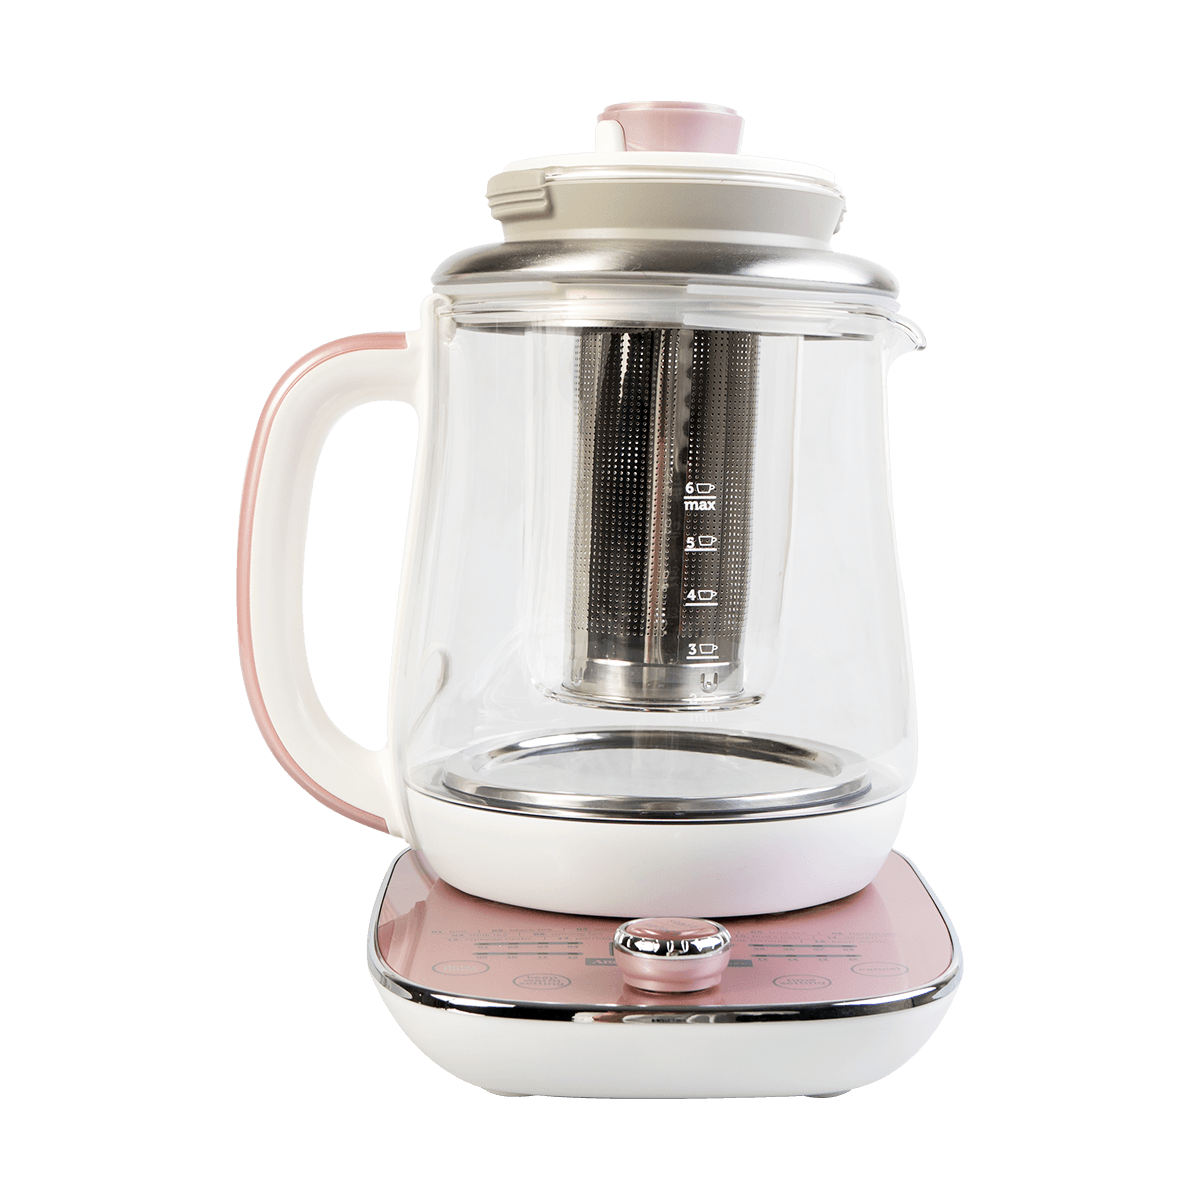 Yamibuy.com:Customer reviews:Multi Function Glass Electric Water Kettle, Healthy Tea Kettle, Delay Timer, 1.5L, AWK-701, Rose Gold